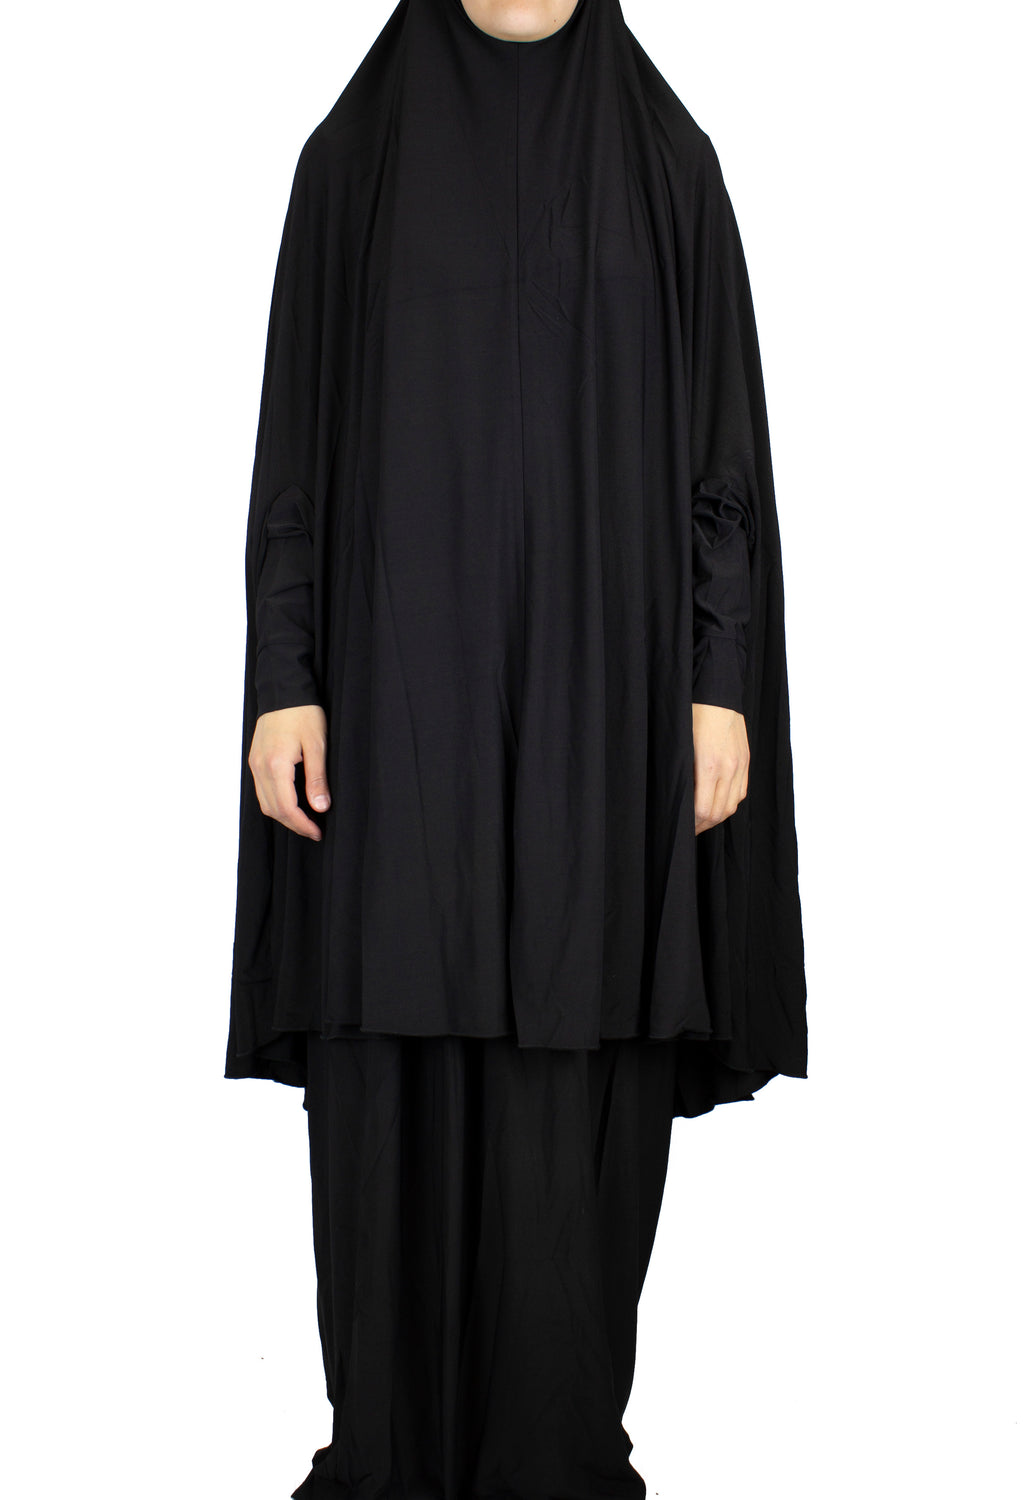 black two piece prayer set with a long khimar that covers to the knees and a maxi skirt